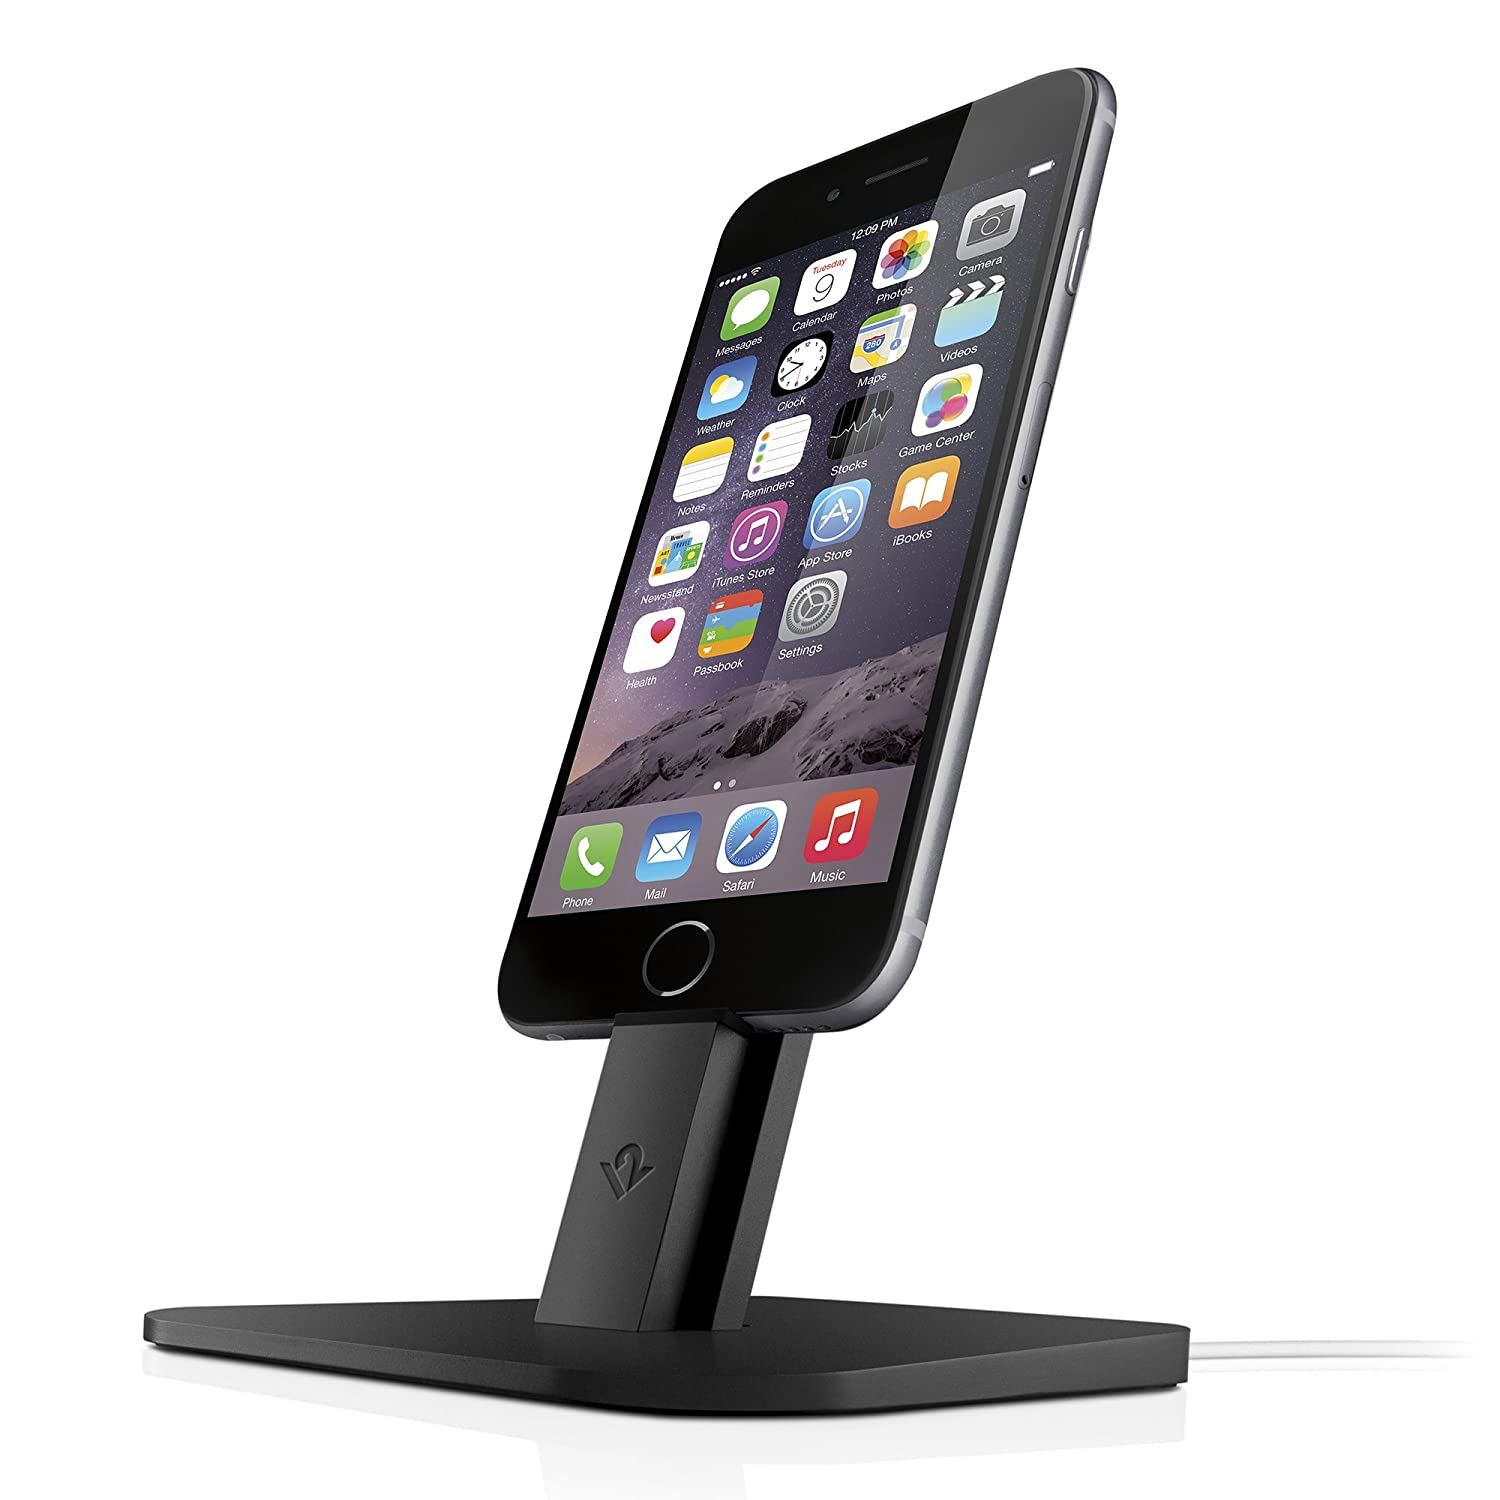 Twelve South HiRise for iPhone/iPad mini, black | Adjustable charging stand, requires Apple Lightning cable